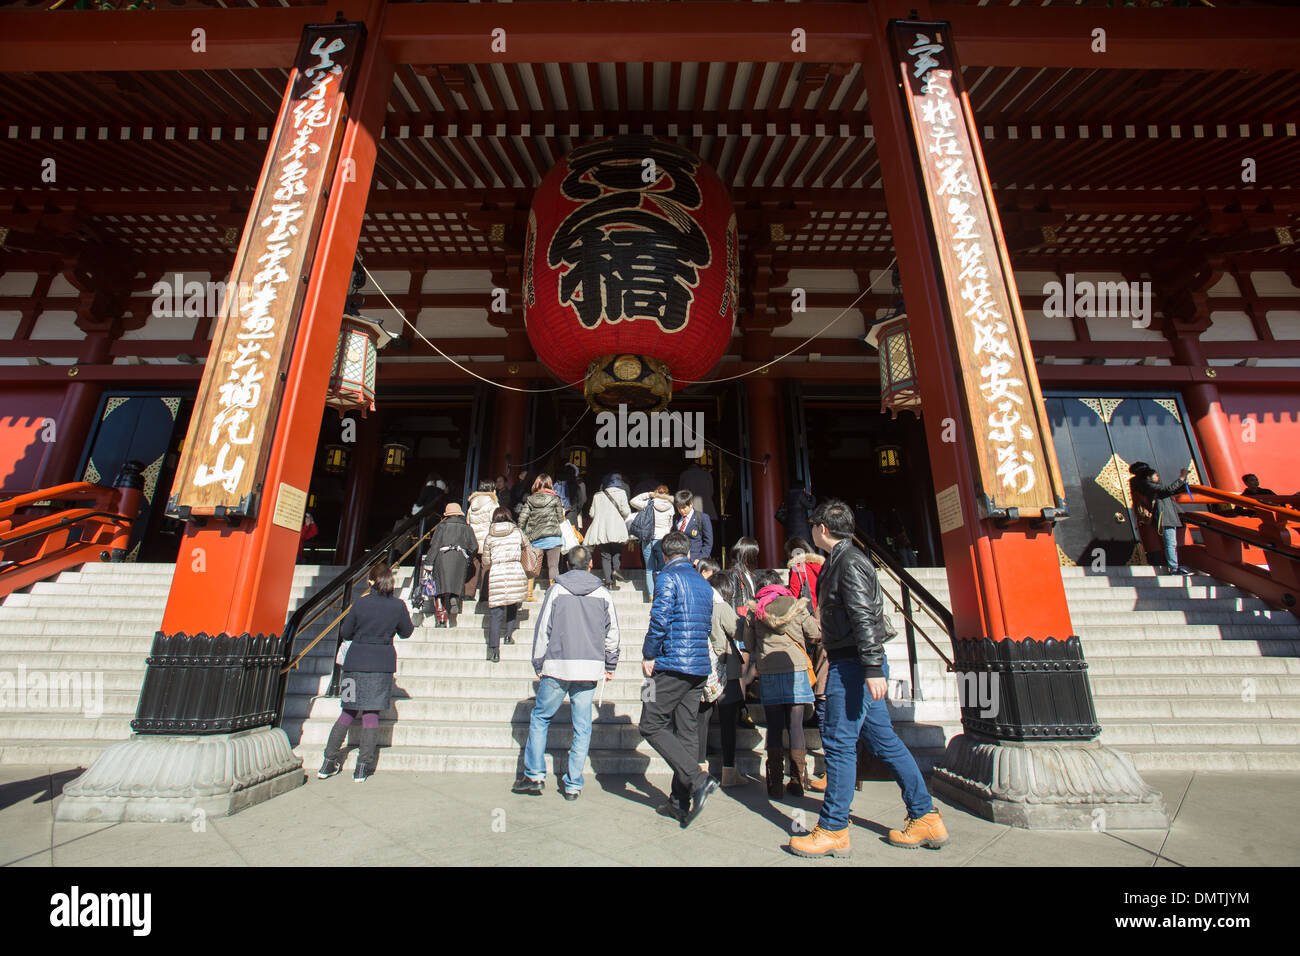 Sensoji is an ancient temple located in Asakusa district of Tokyo and is the city's oldest Buddhist temple. - Stock Image